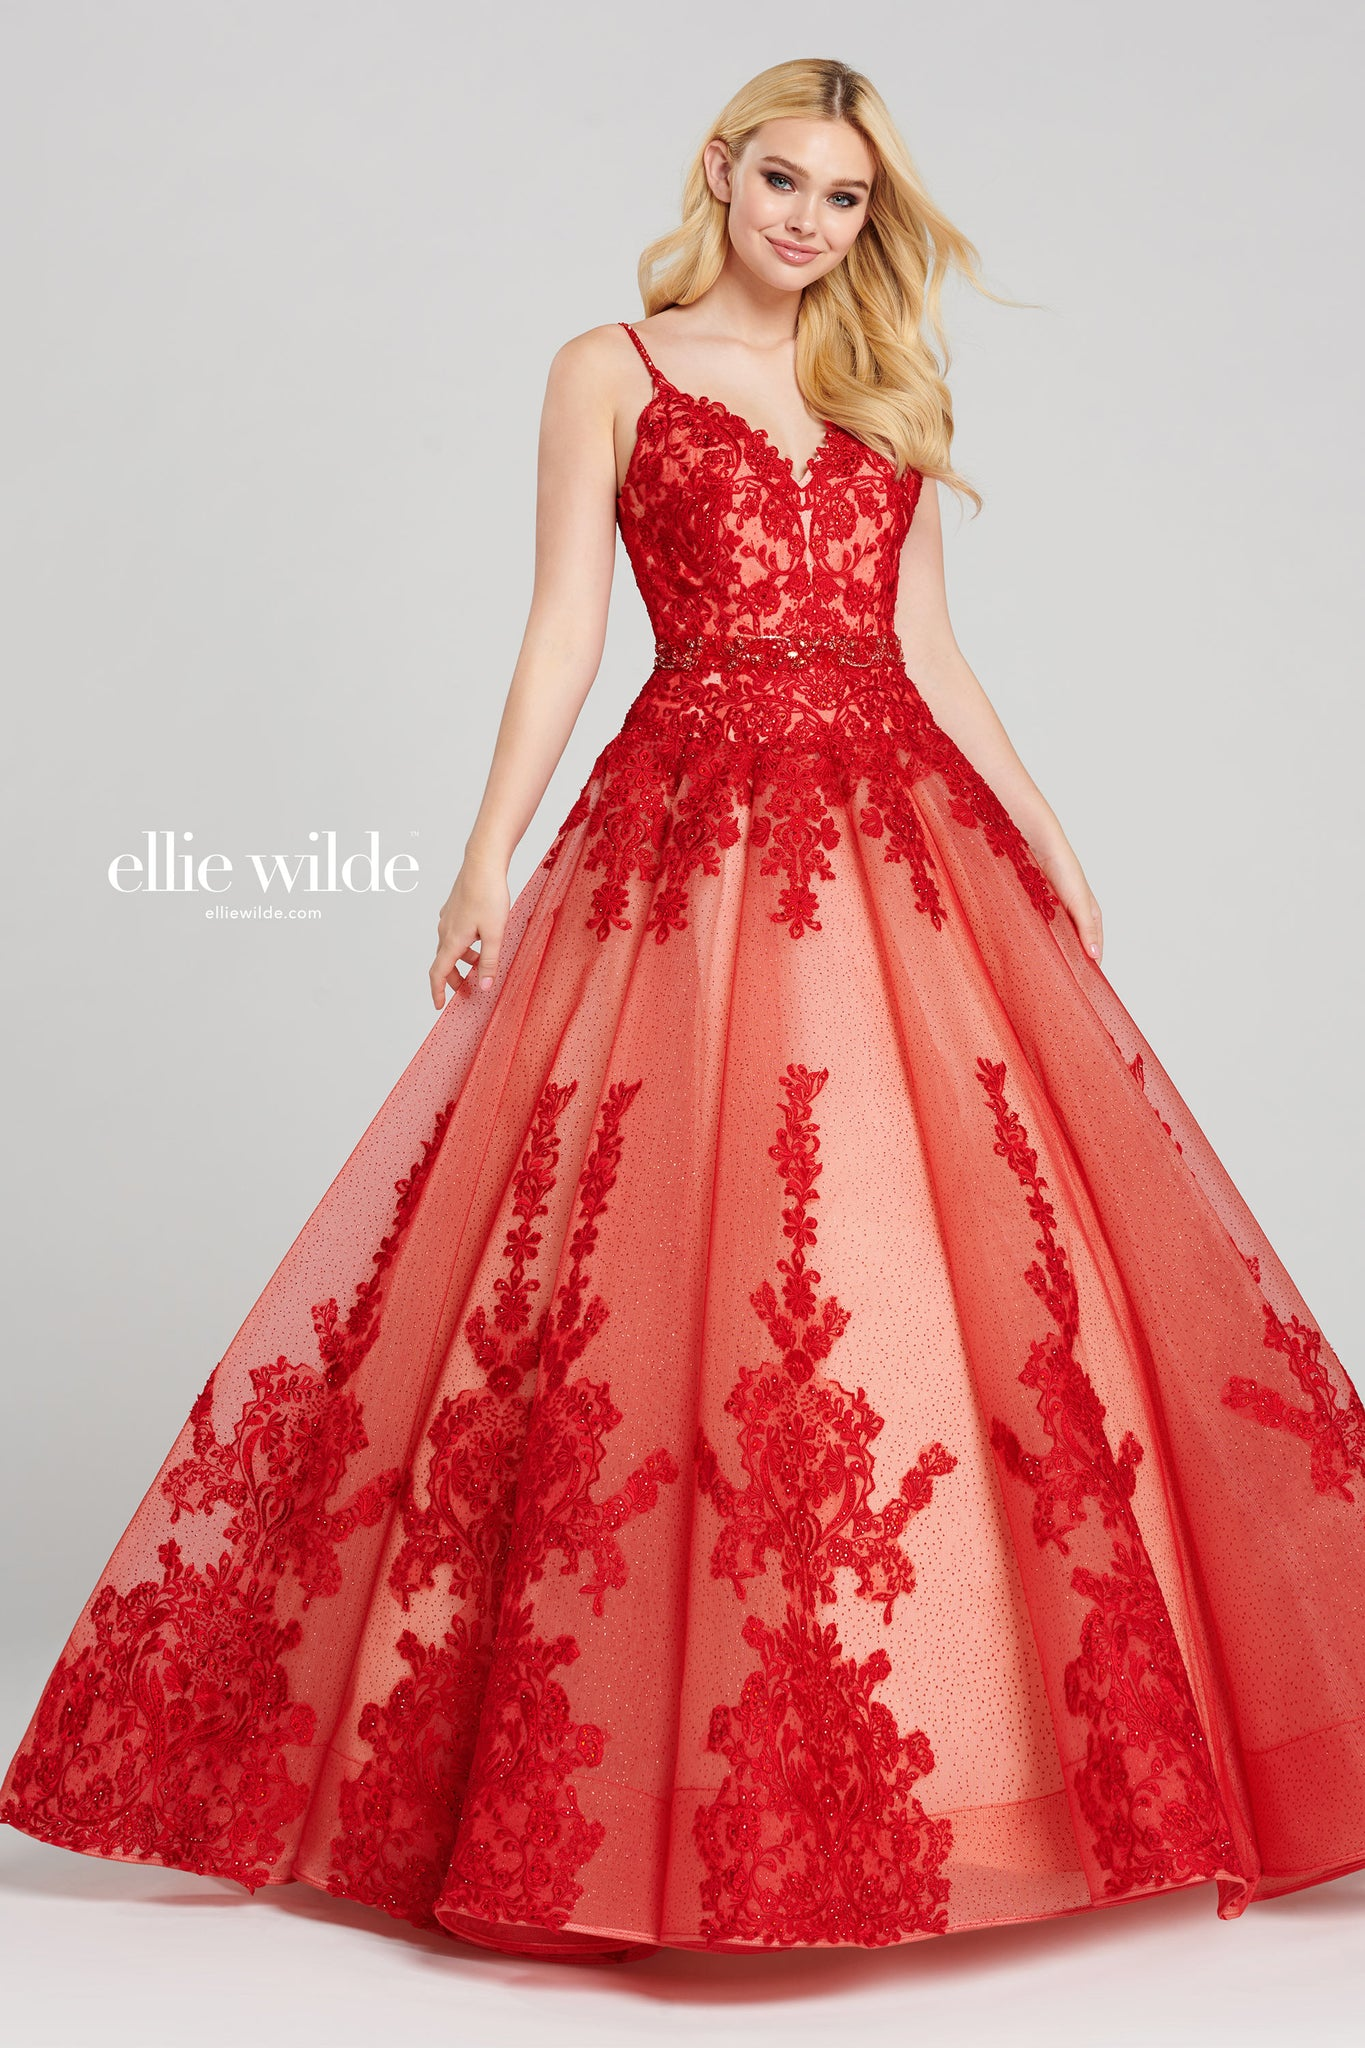 Ellie Wilde Red Lace Ball Gown